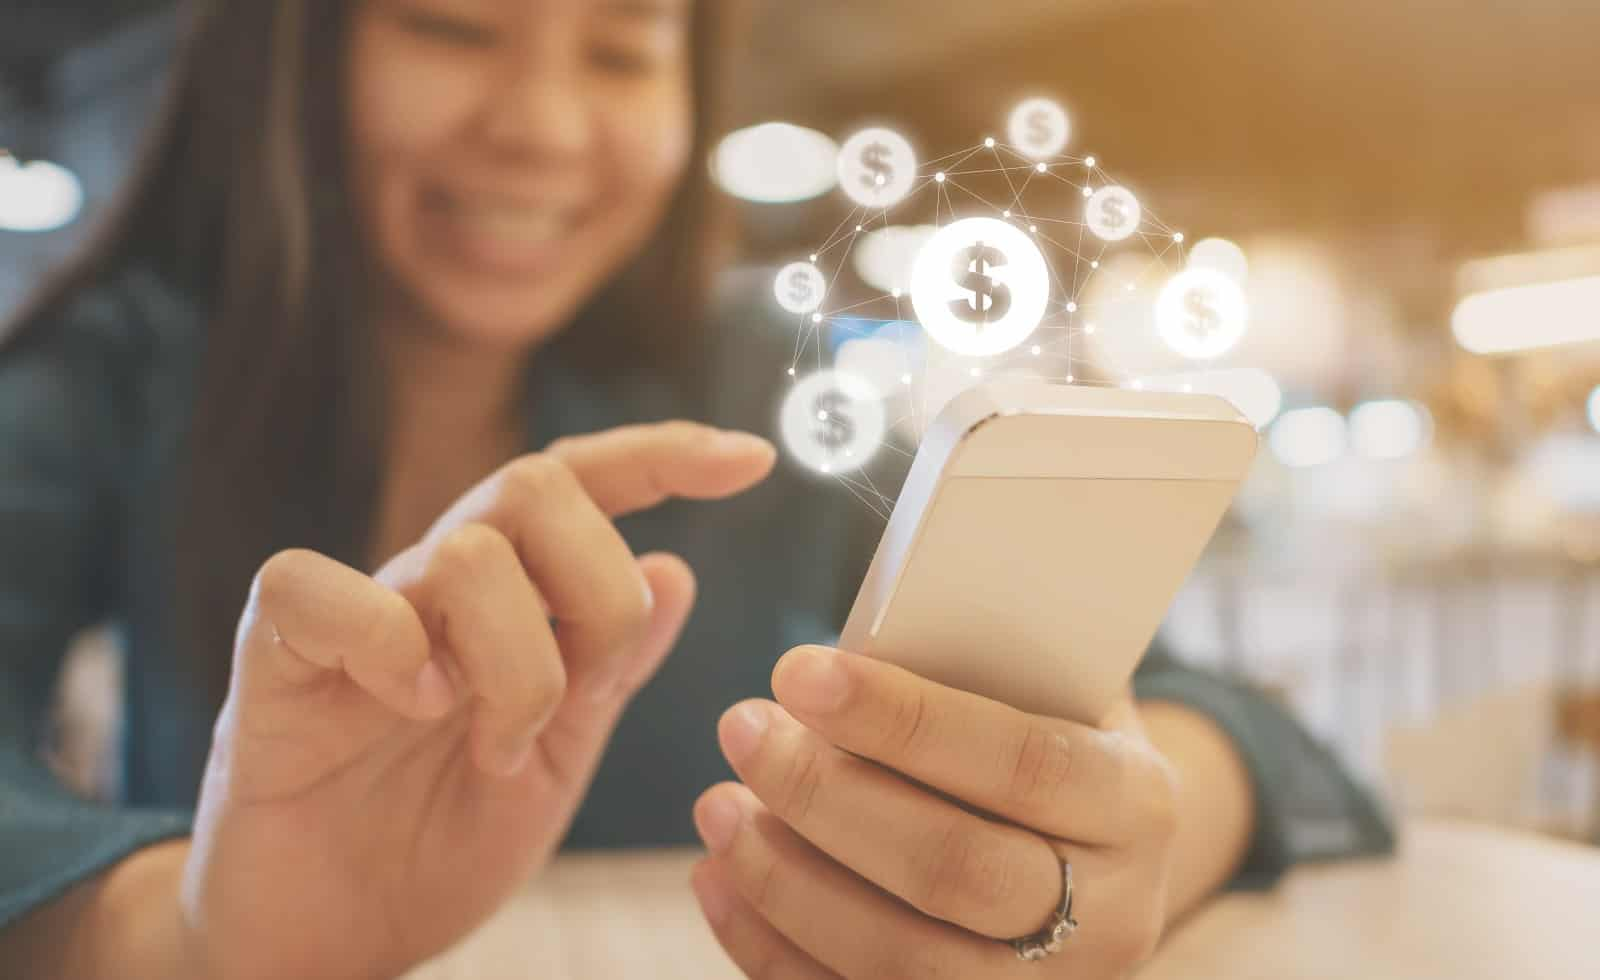 Teen using mobile phone with online transaction application, Concept financial technology (fin-tech)